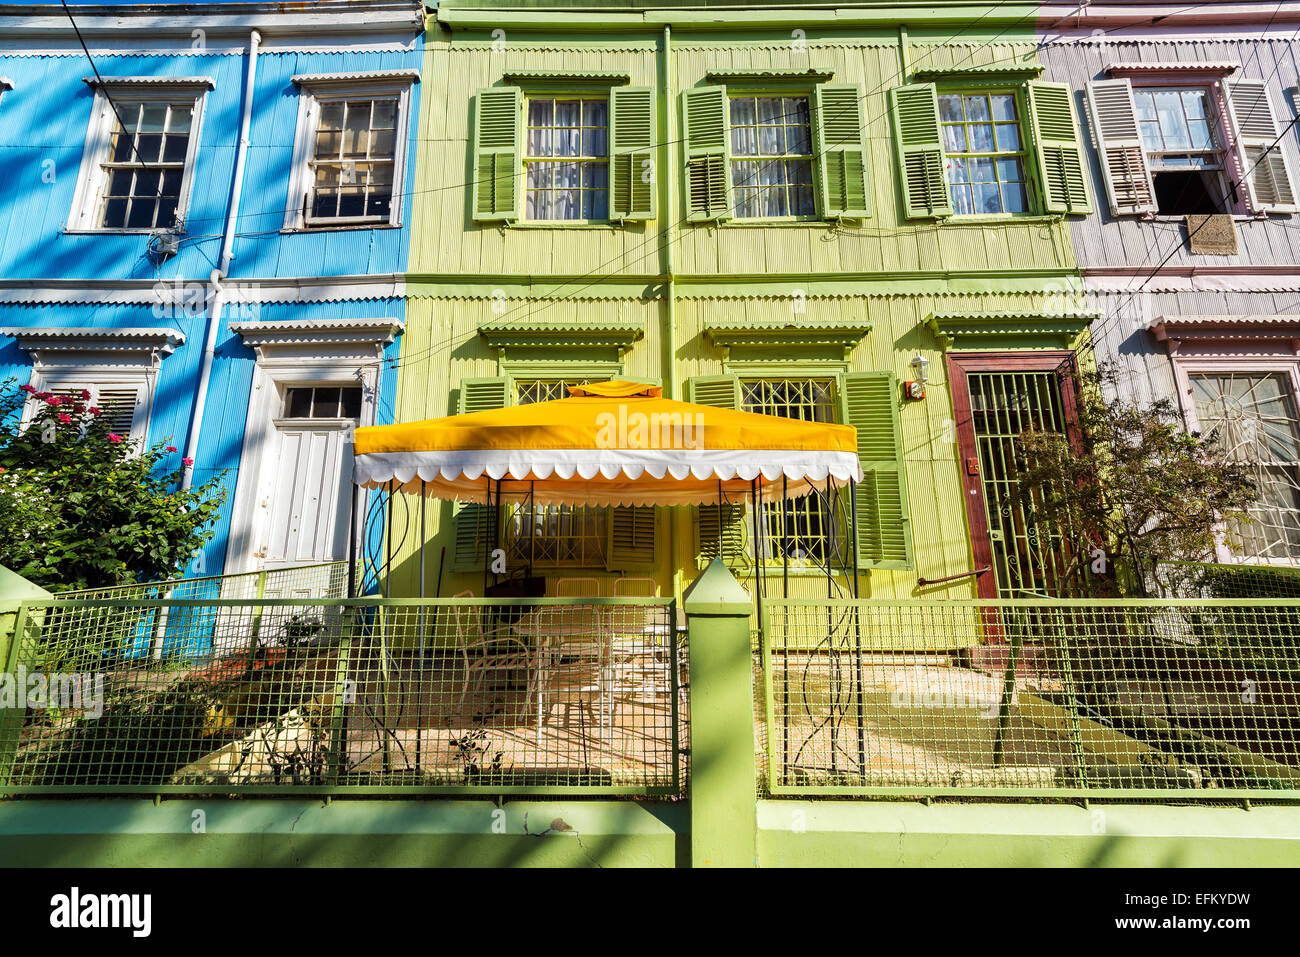 Colorful facades of old historic buildings in Valparaiso, Chile - Stock Image